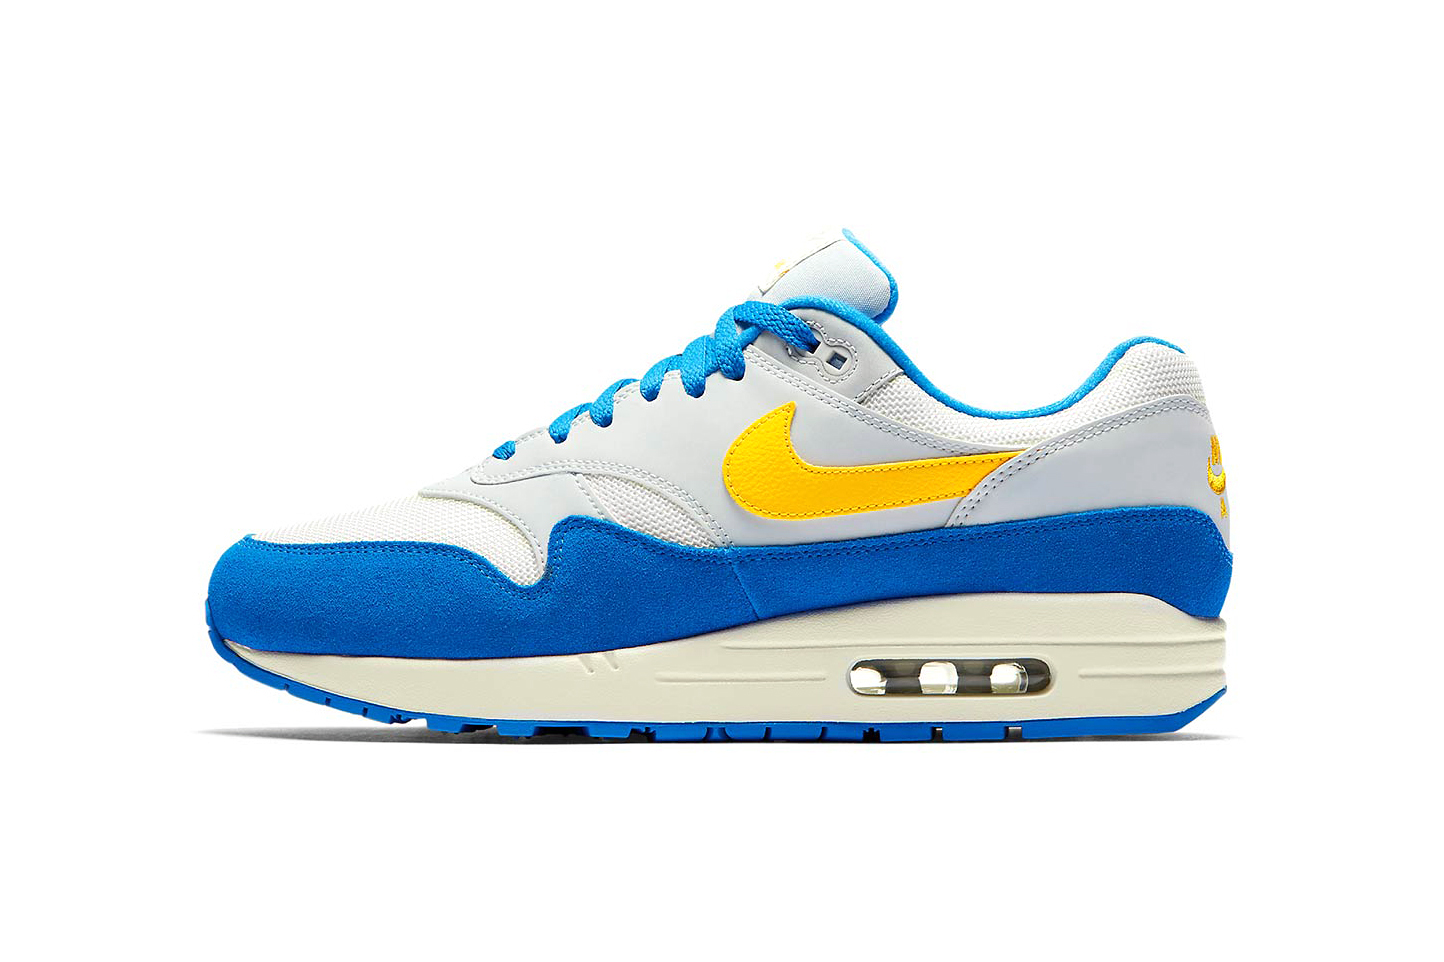 Nike Air Max 1 Sail Amarillo Pure Platinum Signal Blue july 2018 release date info drop sneakers shoes footwear